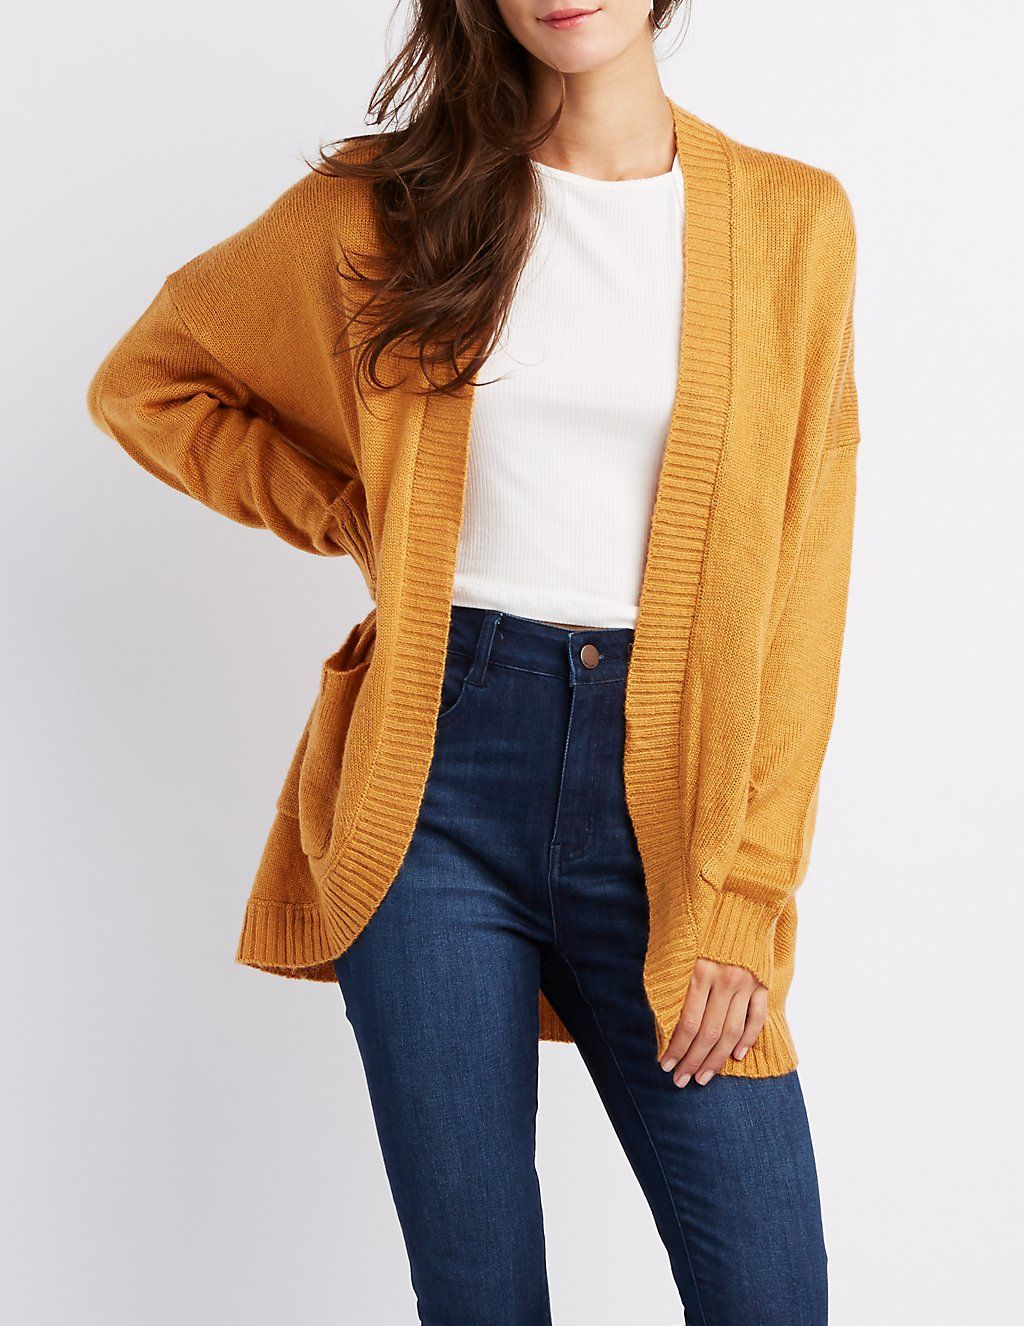 Open Front Boyfriend Cardigan Boyfriends And Olive Basic Cardy Add Some Texture Style To Your Look With This Soft Knit The